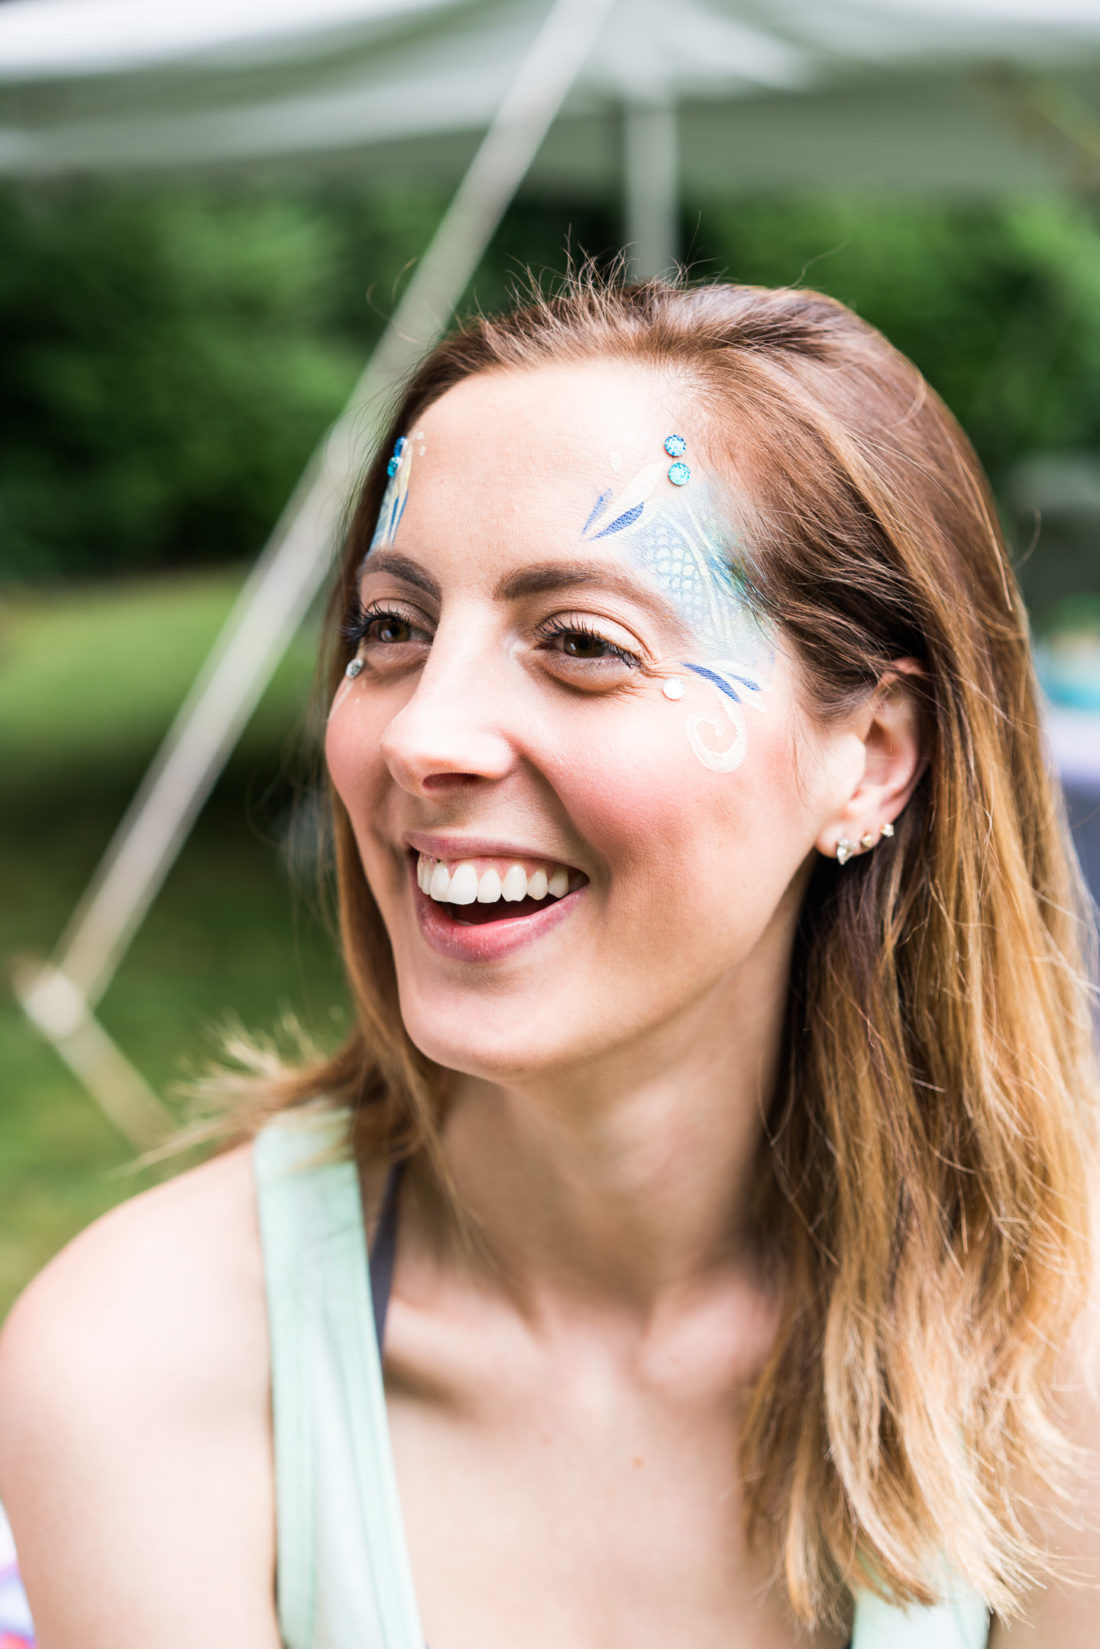 Eva Amurri Martino gets her face painted like a mermaid at her daughter Marlowe's third birthday party